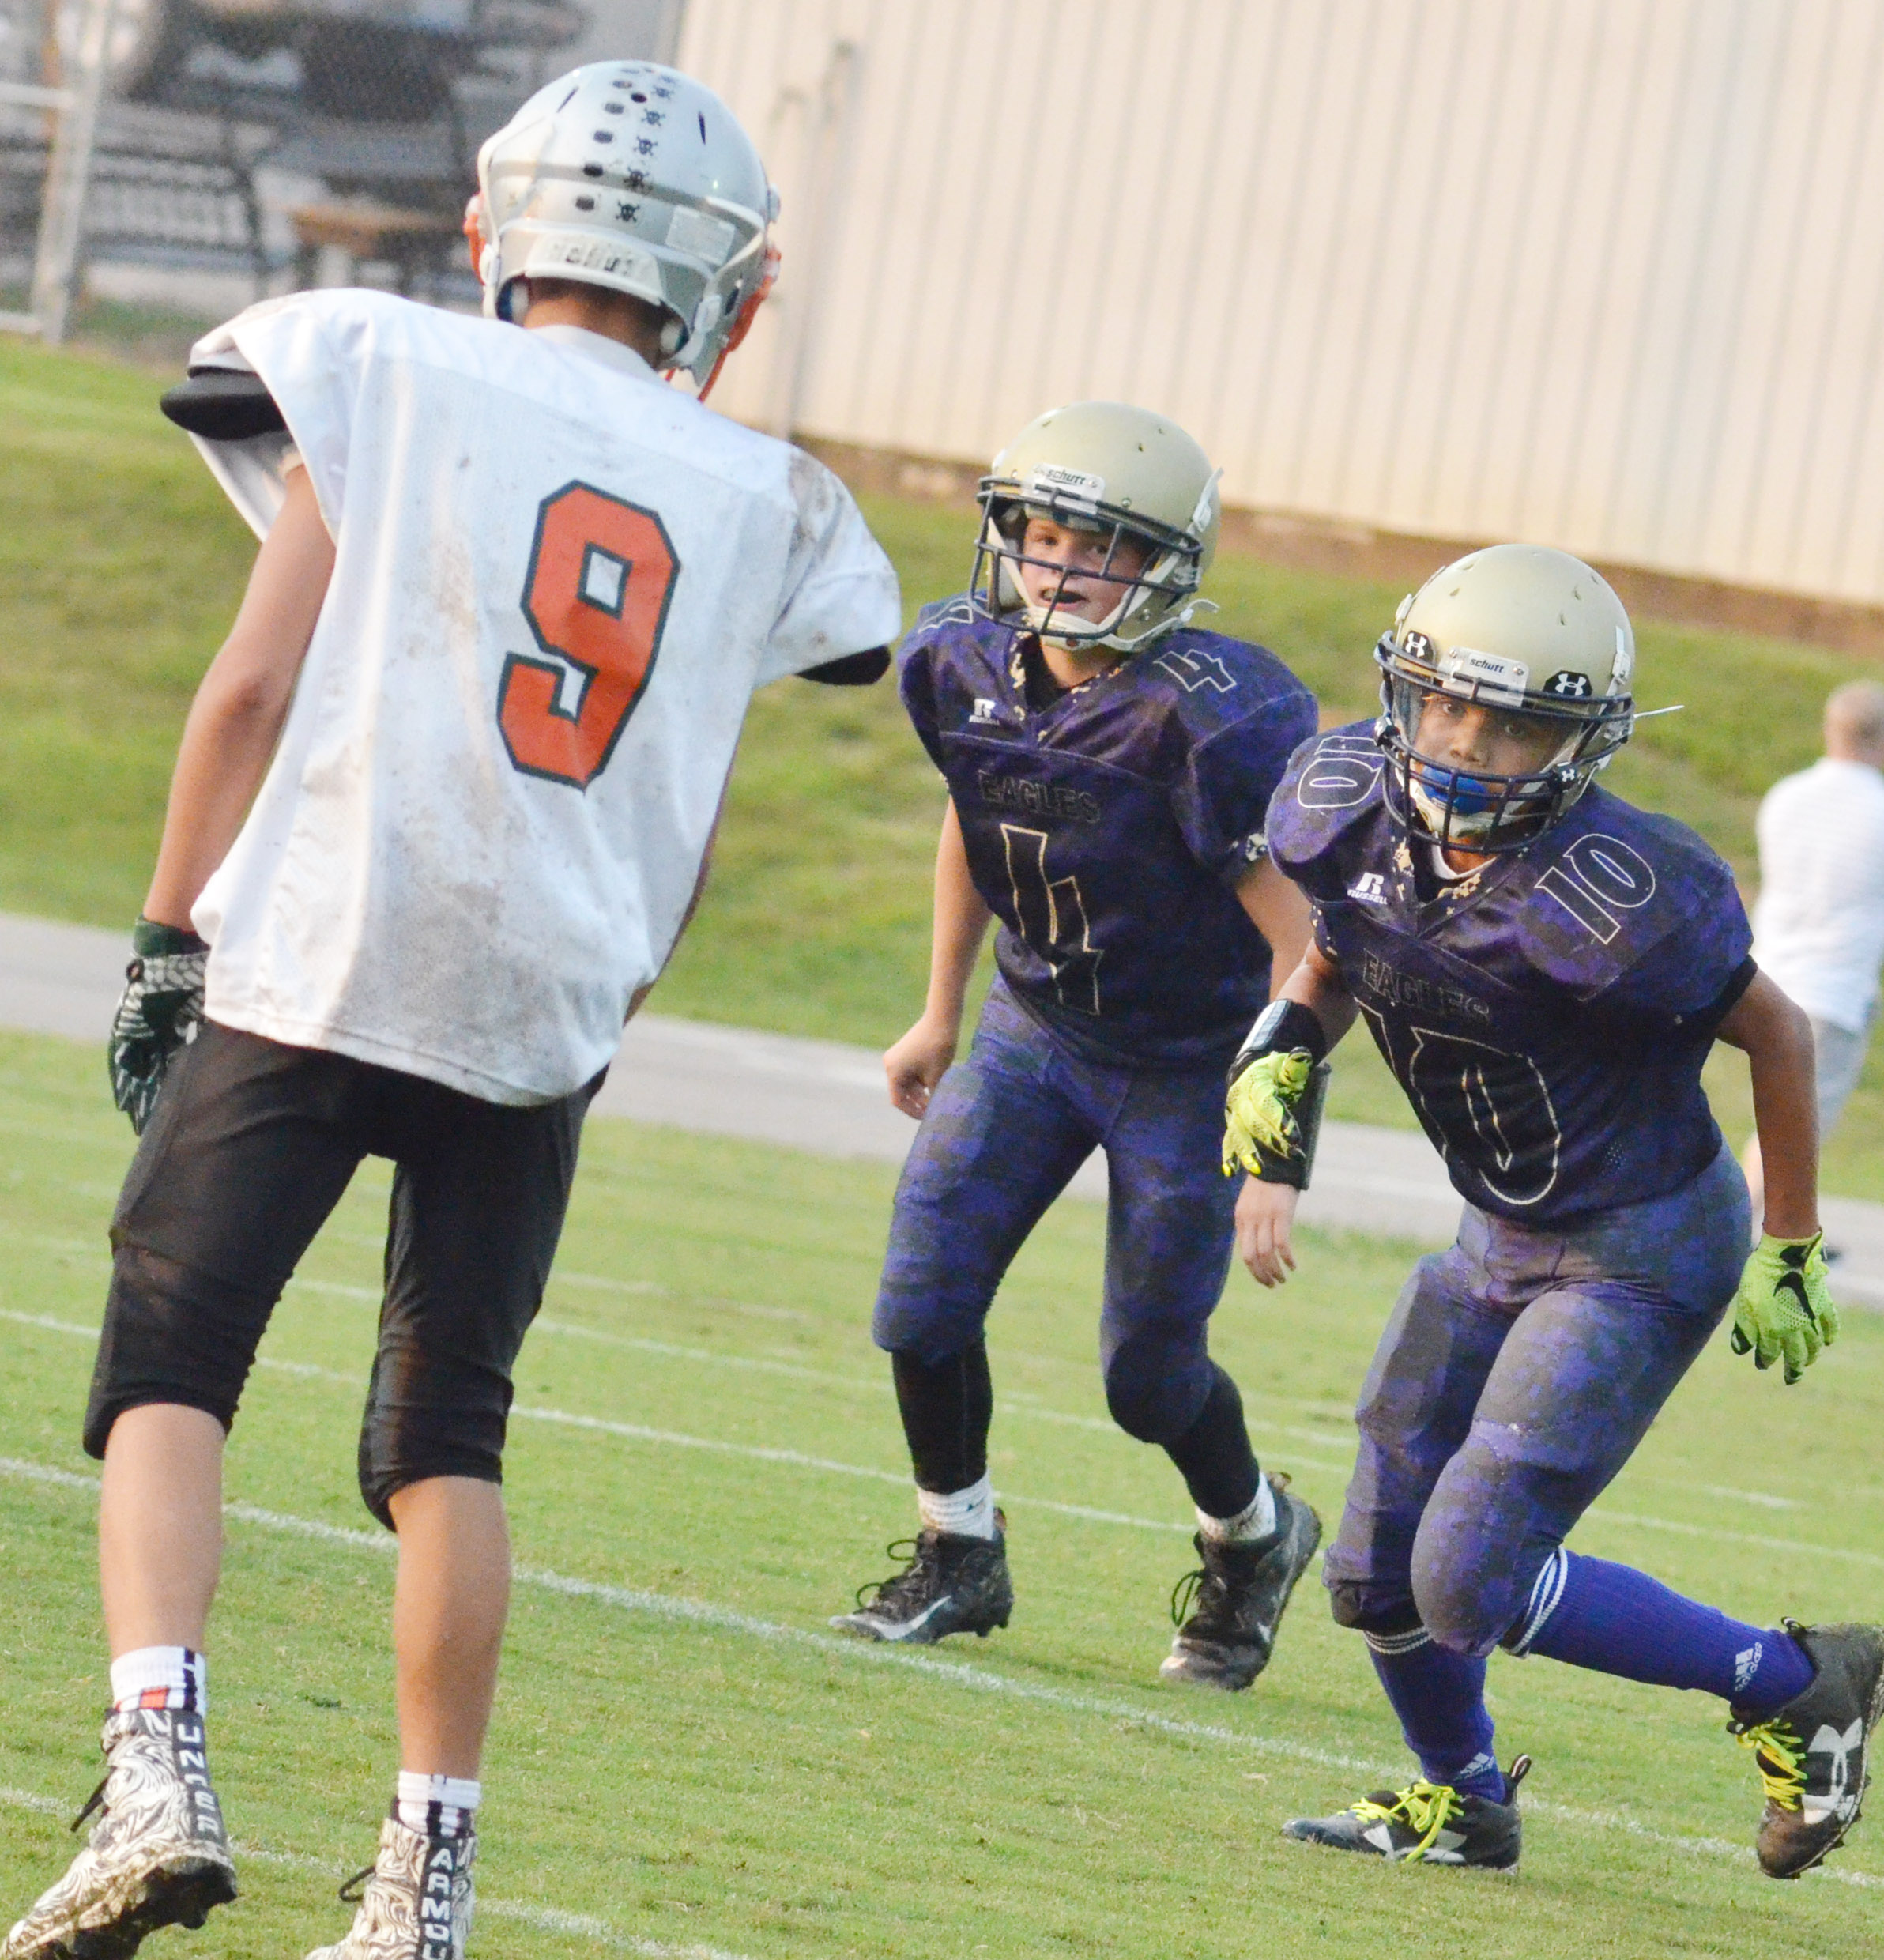 CMS seventh-grader Konner Forbis, at left, and sixth-grader Tashaun Hart run.